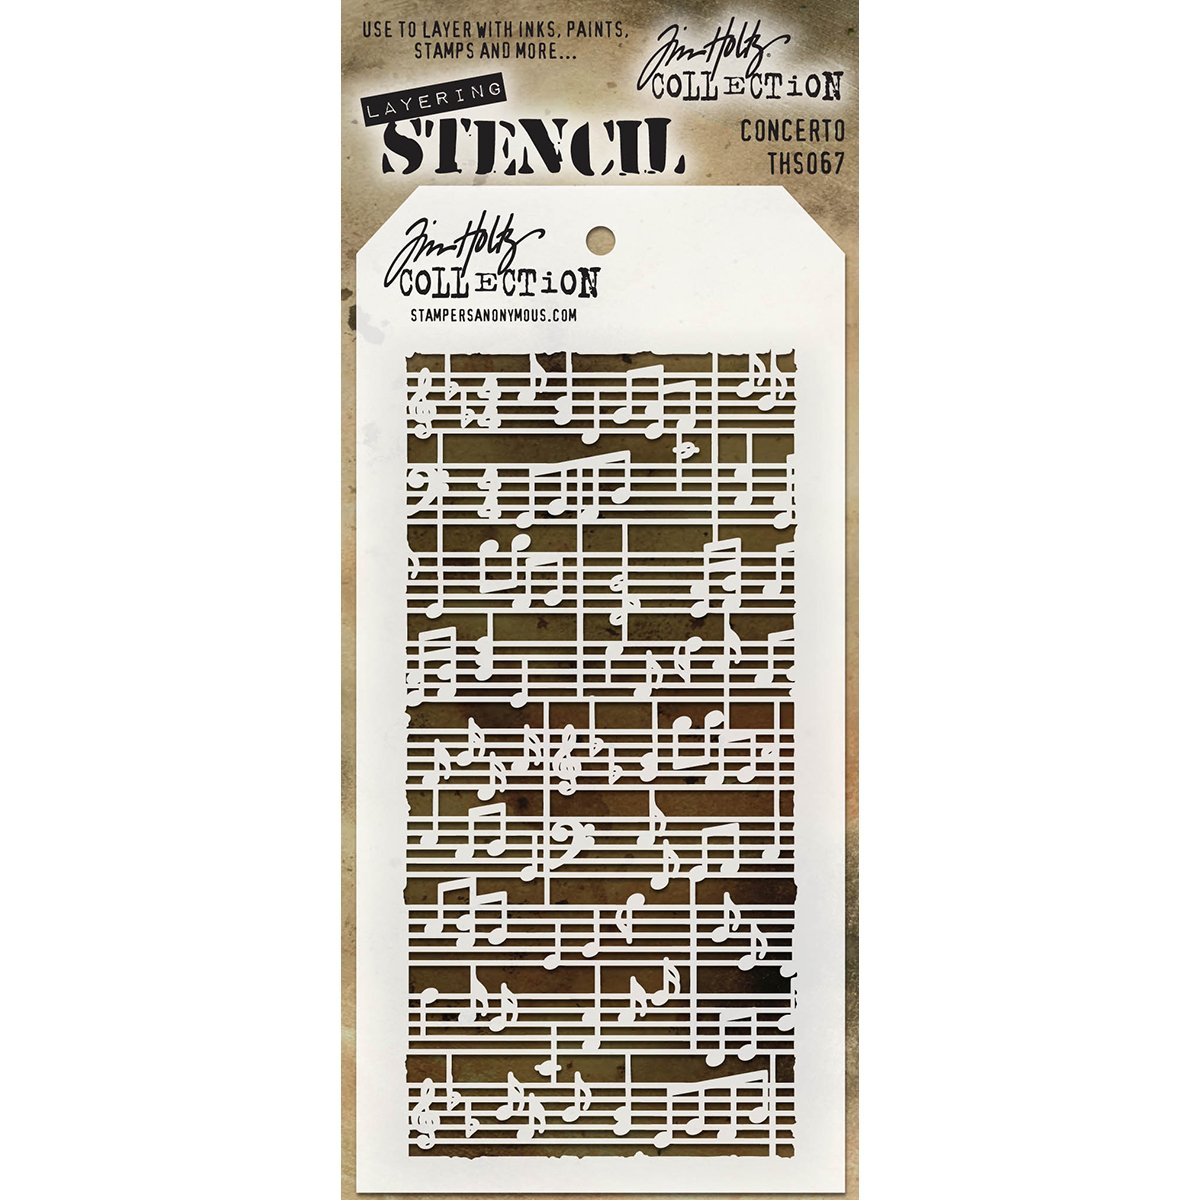 Stampers Anonymous - Tim Holtz - Concerto Stencil AGTHS067